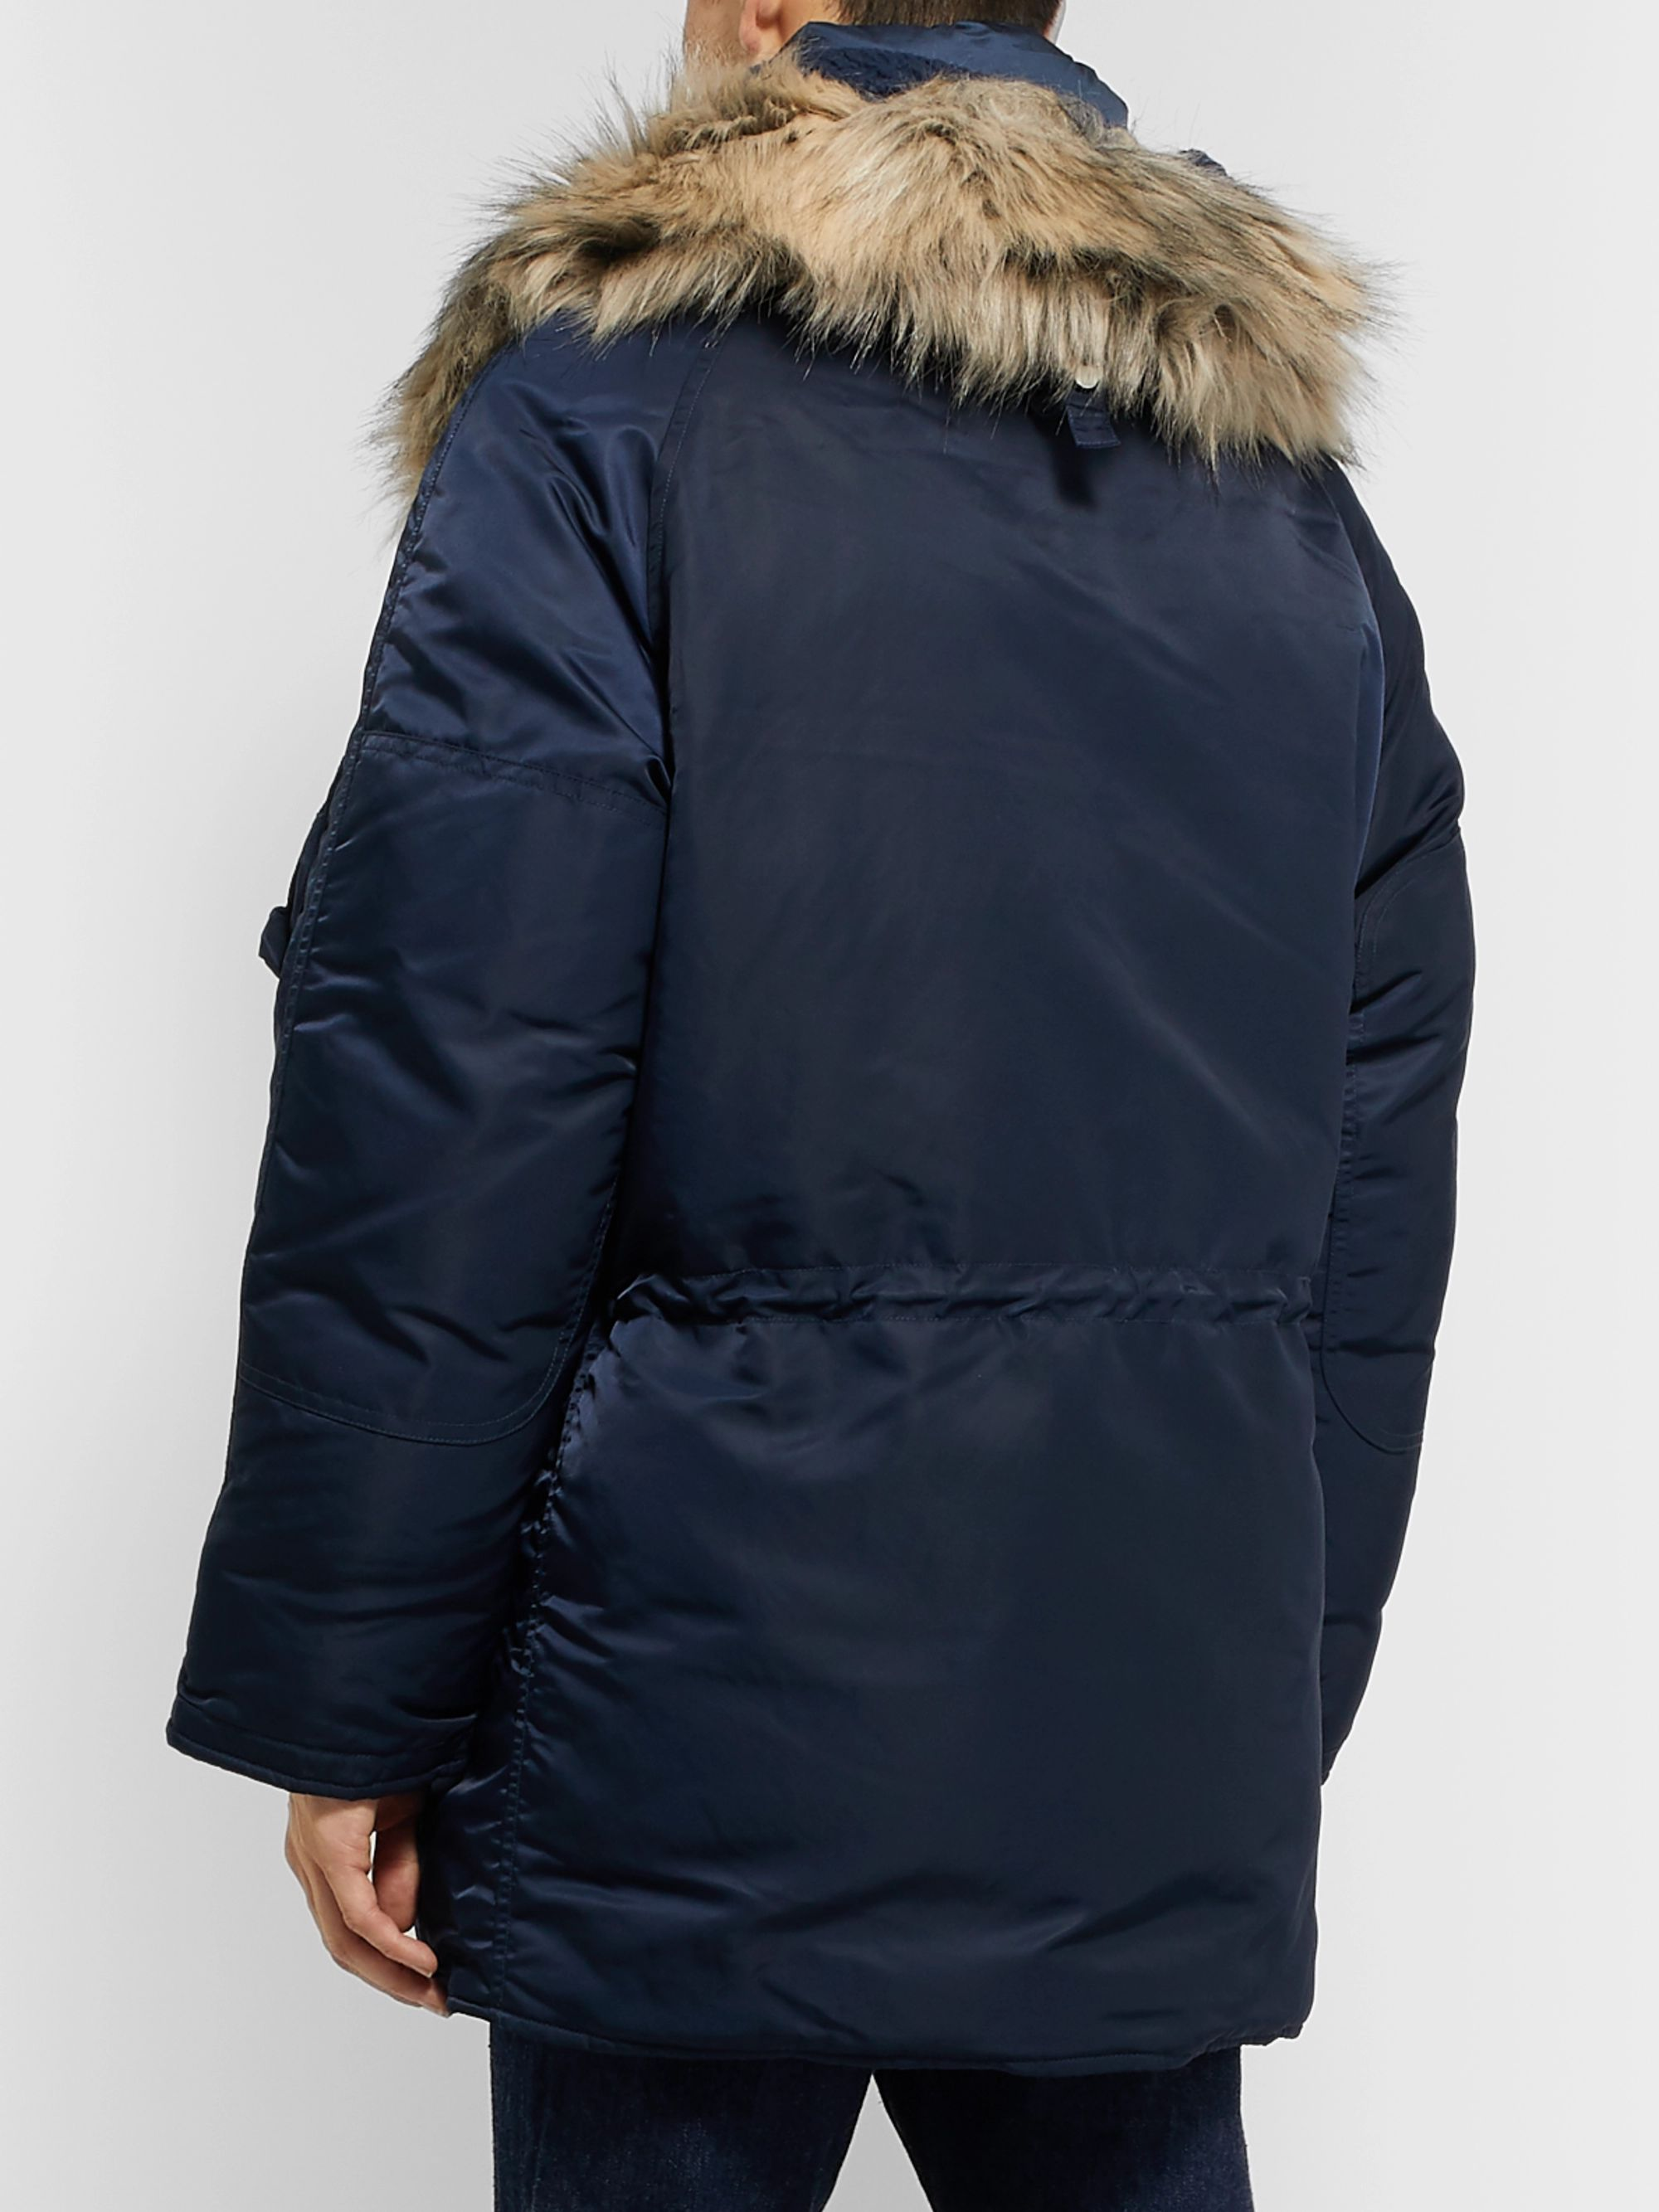 nanamica Harbor Oversized Faux Fur-Trimmed Padded Nylon Hooded Down Jacket